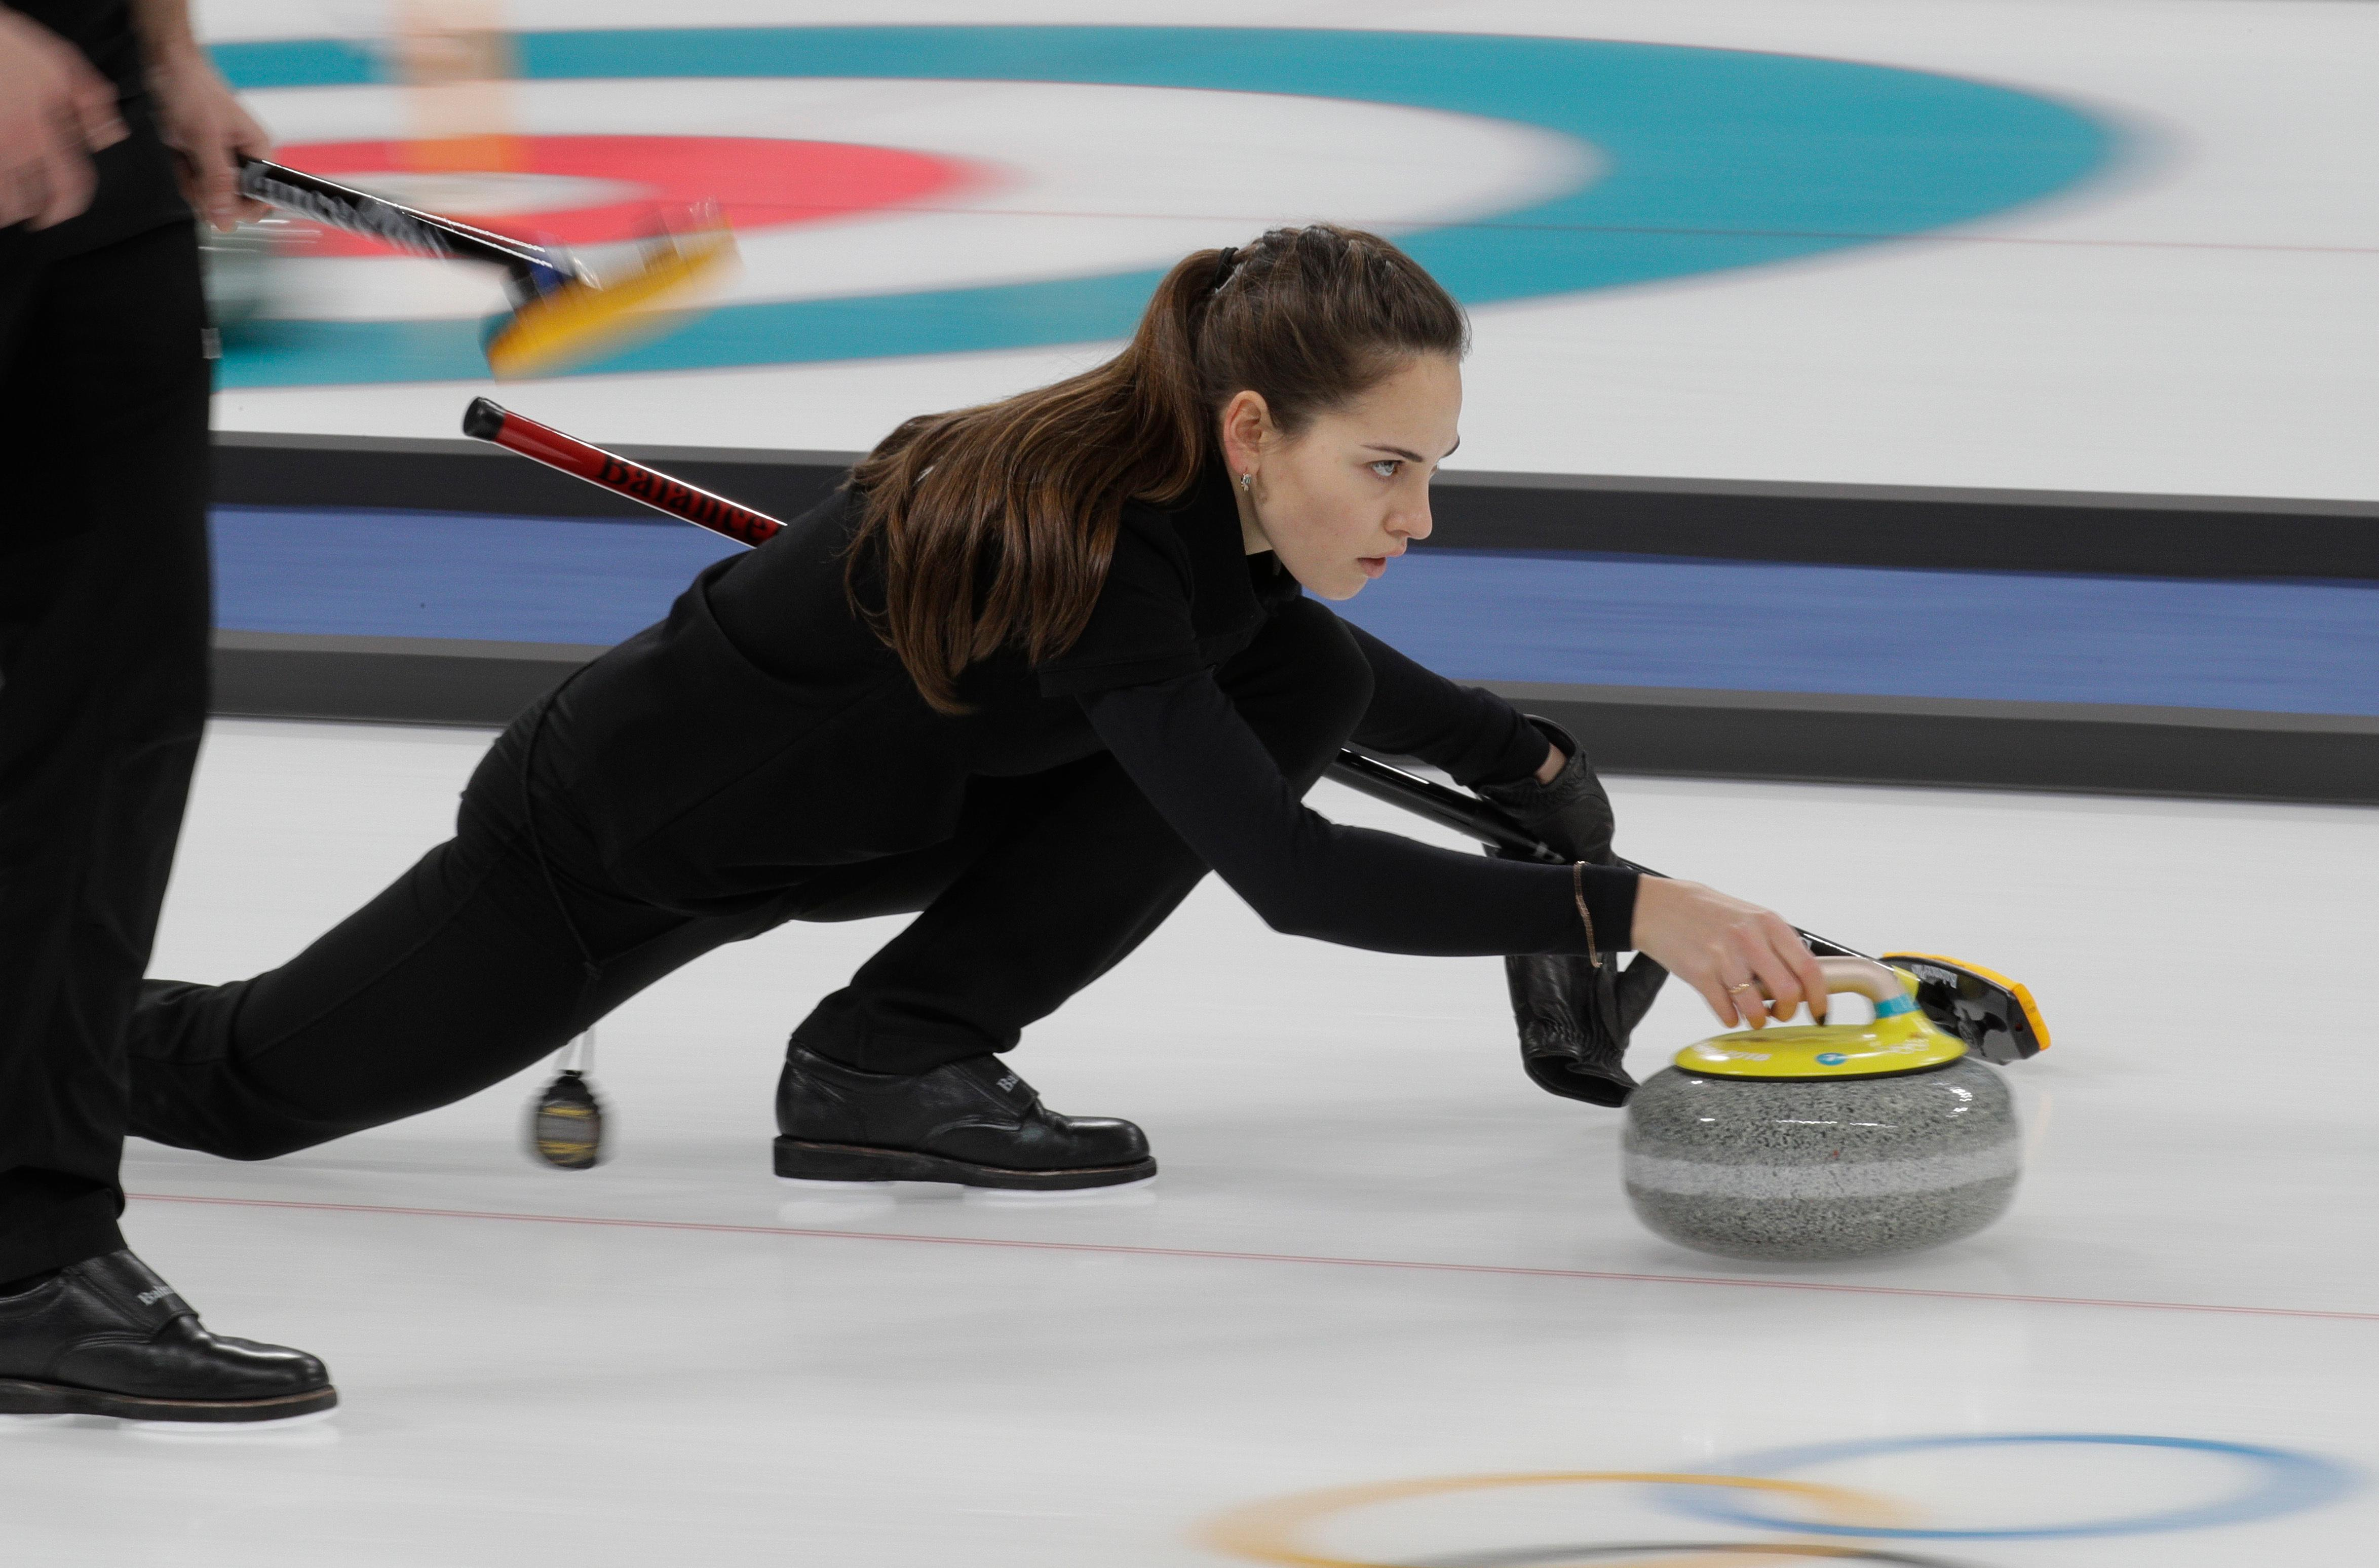 Olympic Athlete from Russia curler Anastasia Bryzgalova prepares to throw her stone during the mixed doubles training session ahead of the 2018 Winter Olympics in Gangneung, South Korea, Wednesday, Feb. 7, 2018. (AP Photo/Aaron Favila)